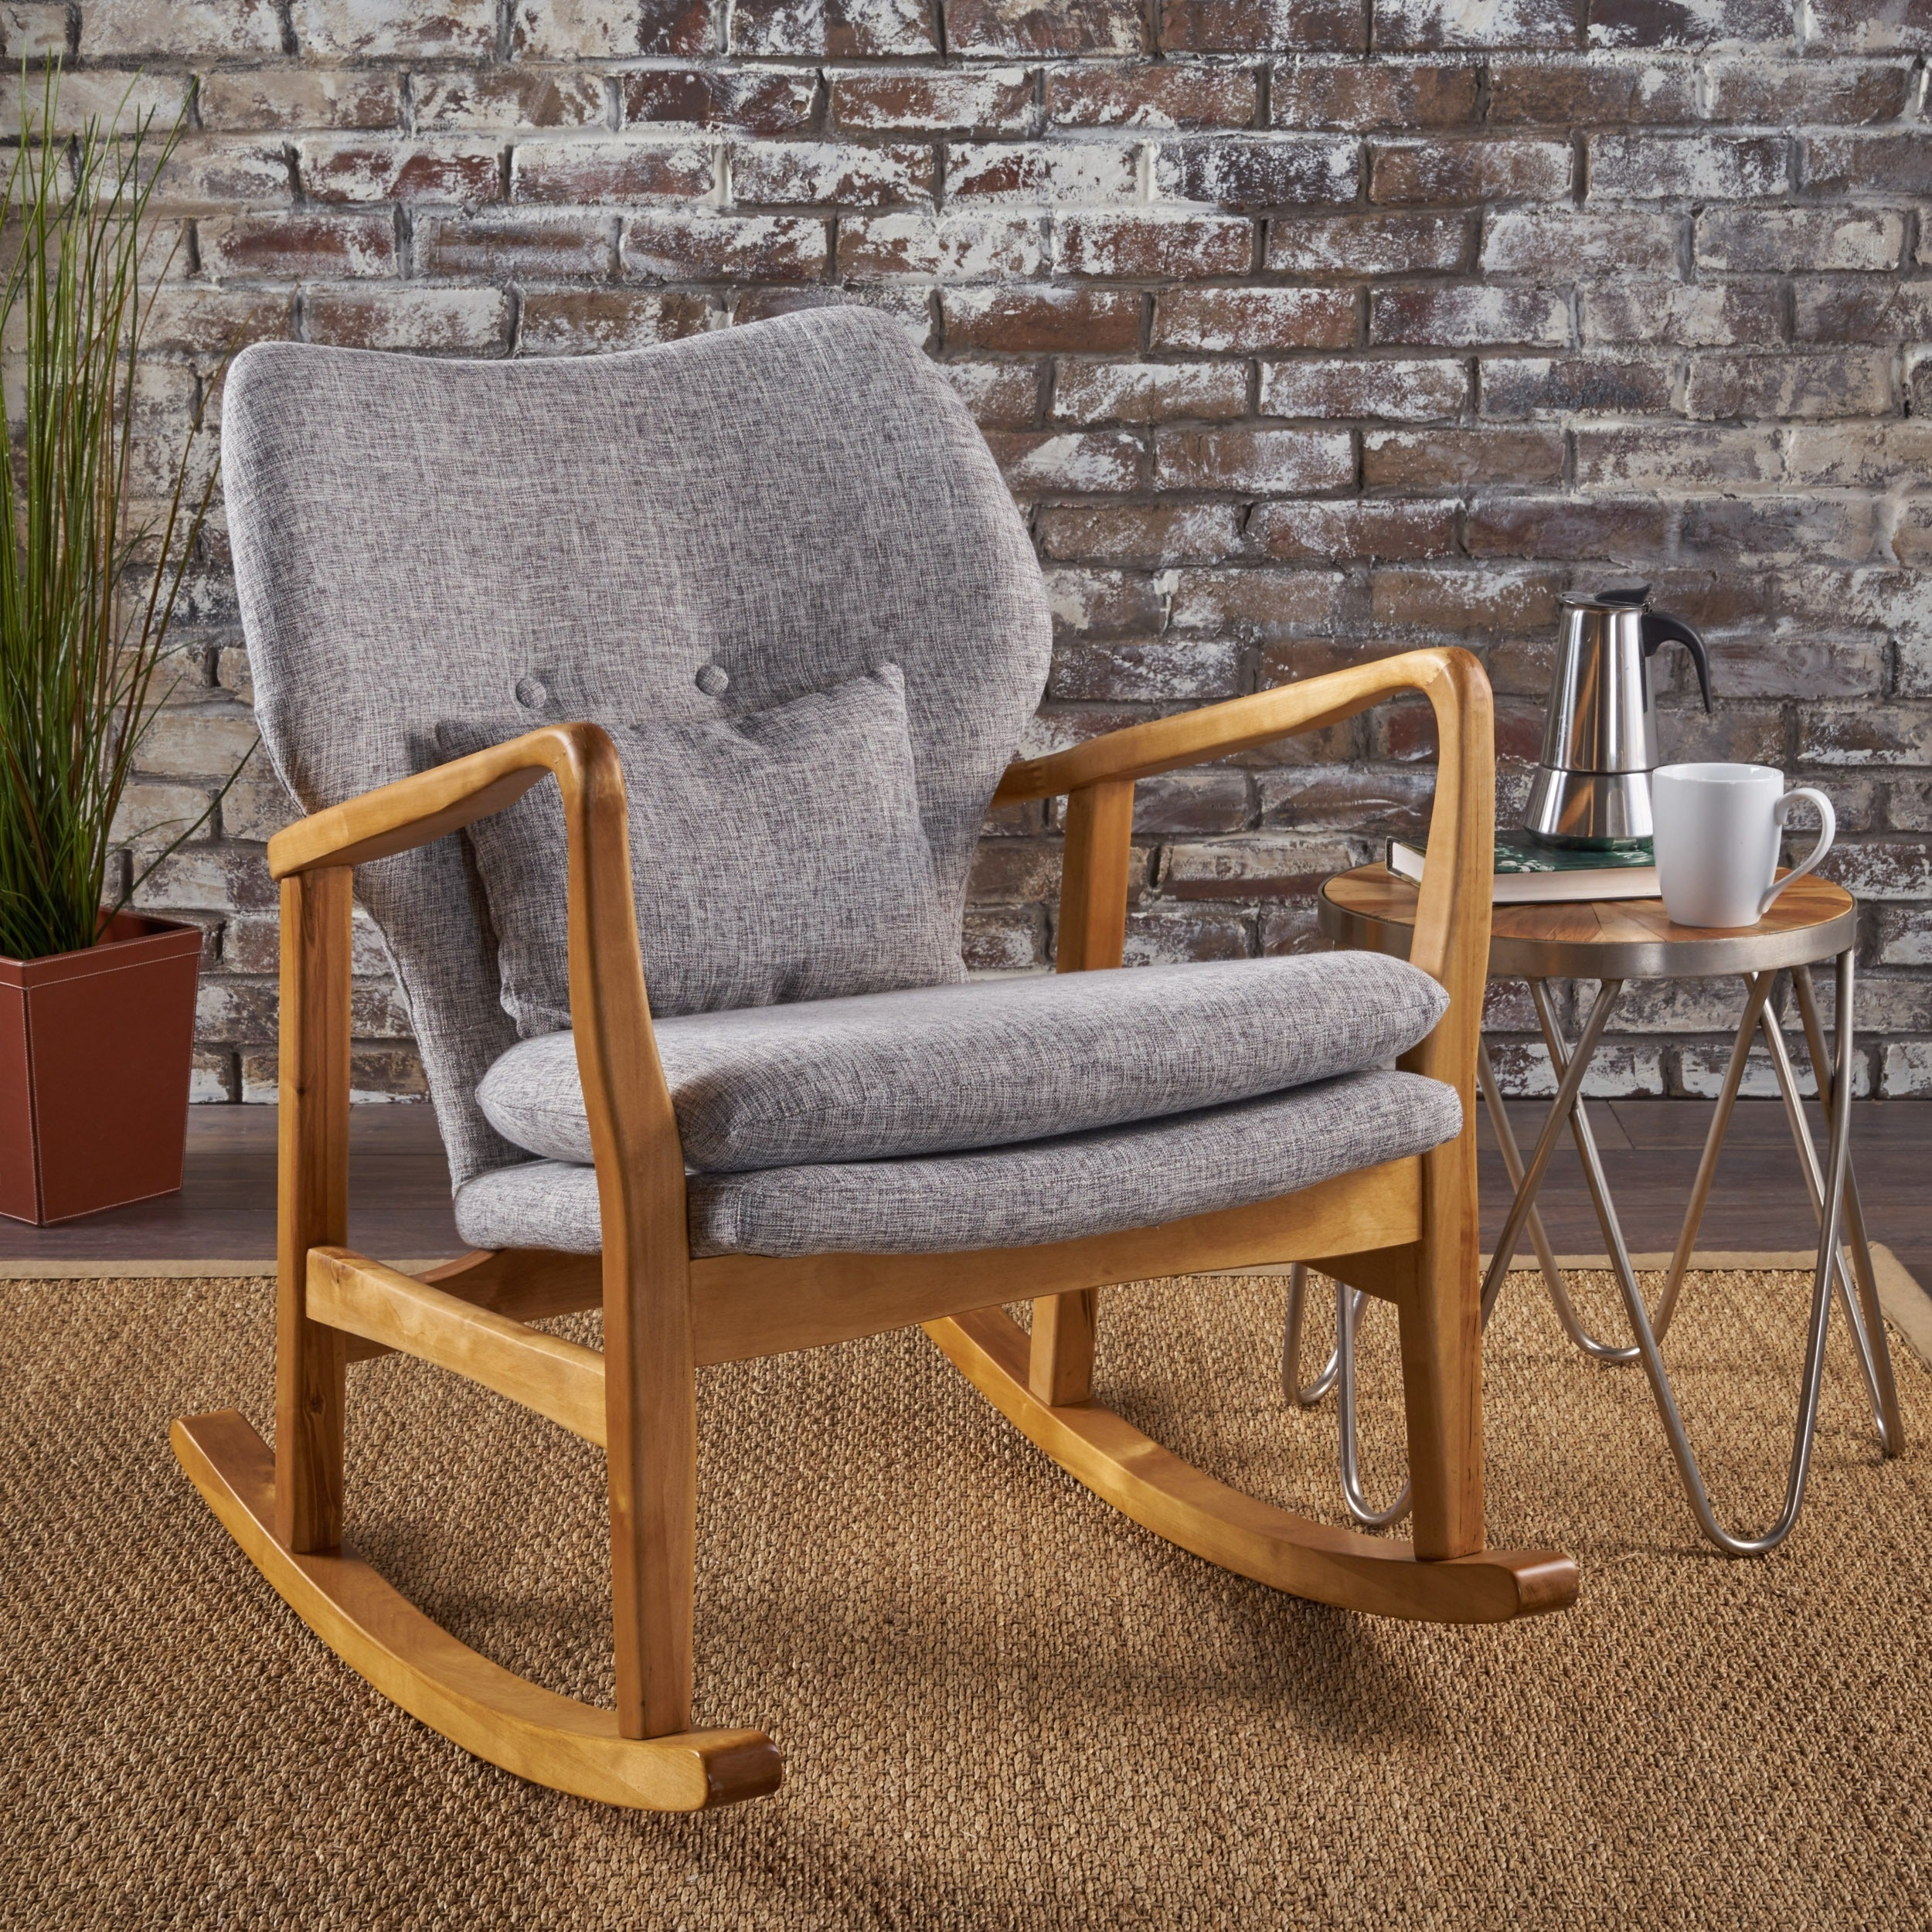 Rocking Chairs Living Room Furniture | Find Great Furniture Inside Beige Fabric And Cherry Wood Rocking Chairs (View 2 of 20)